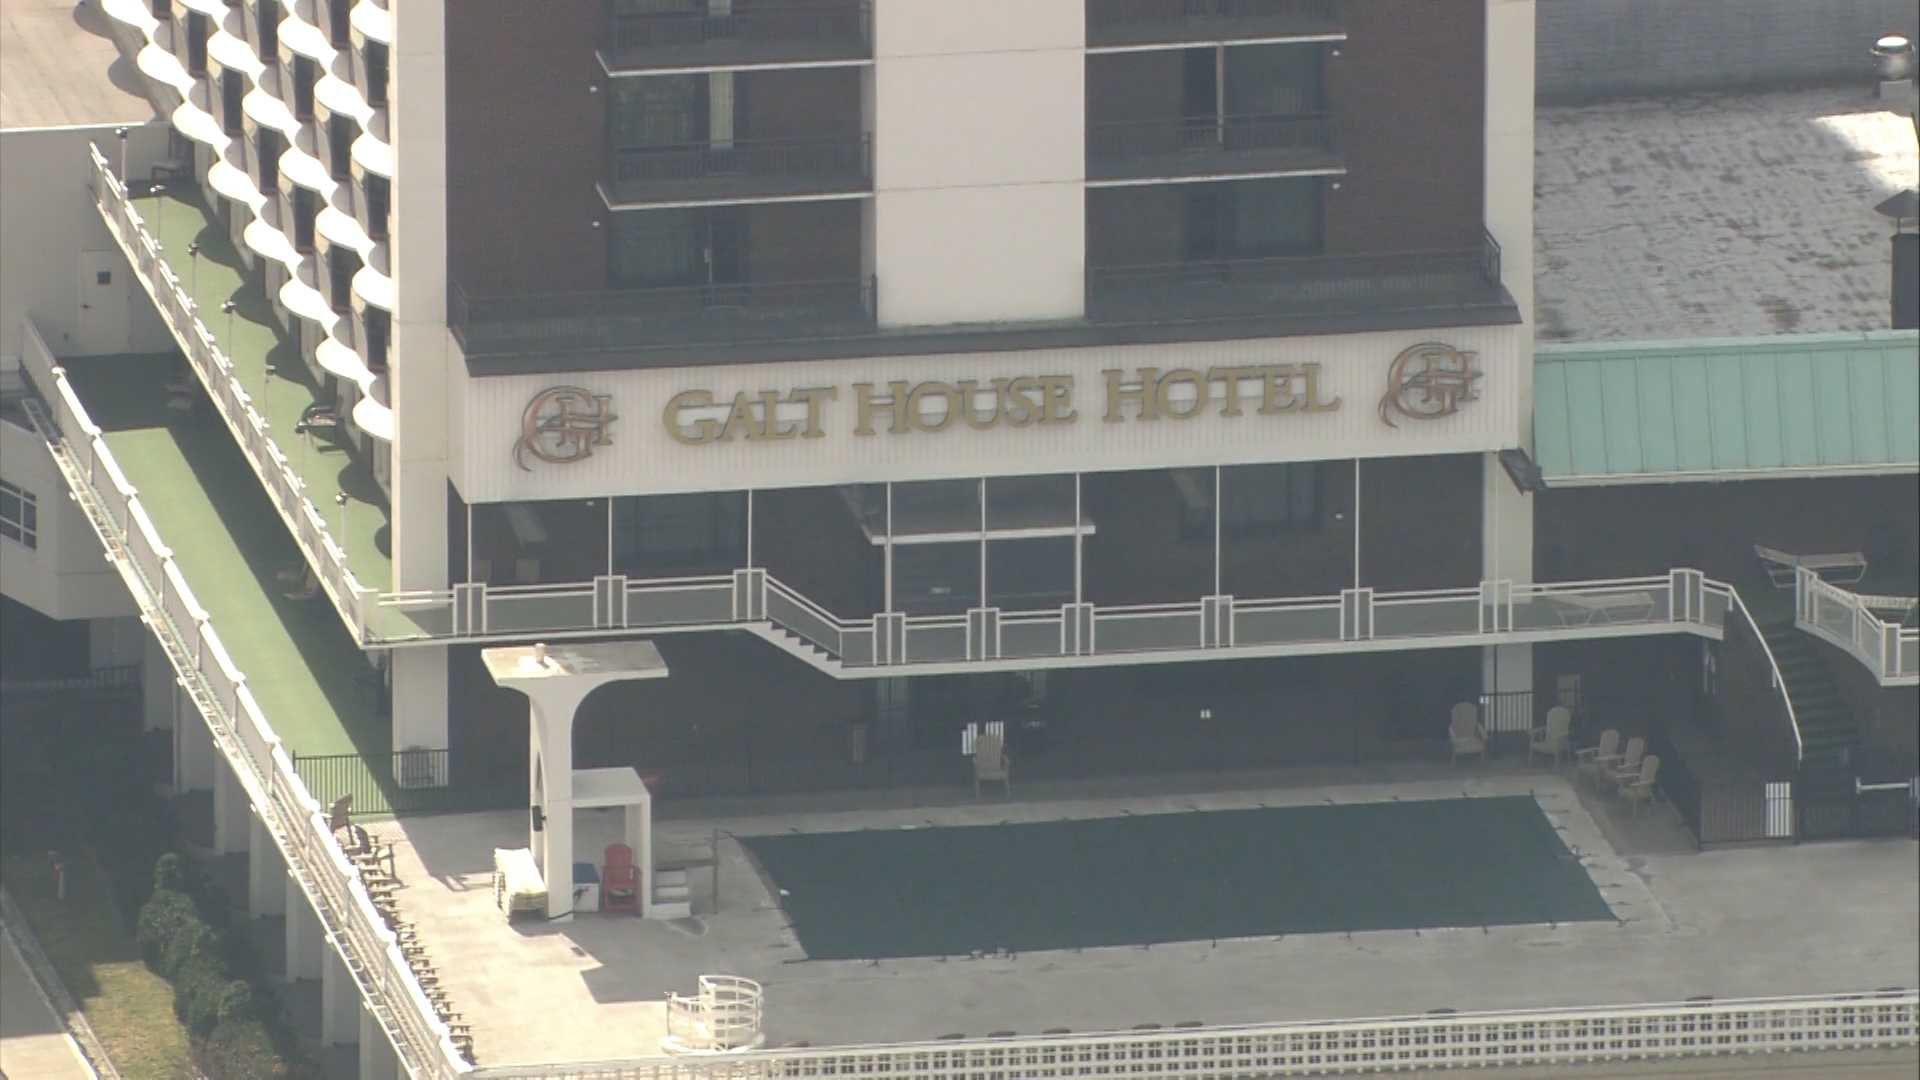 Payment Information Taken In Galt House Security Breach